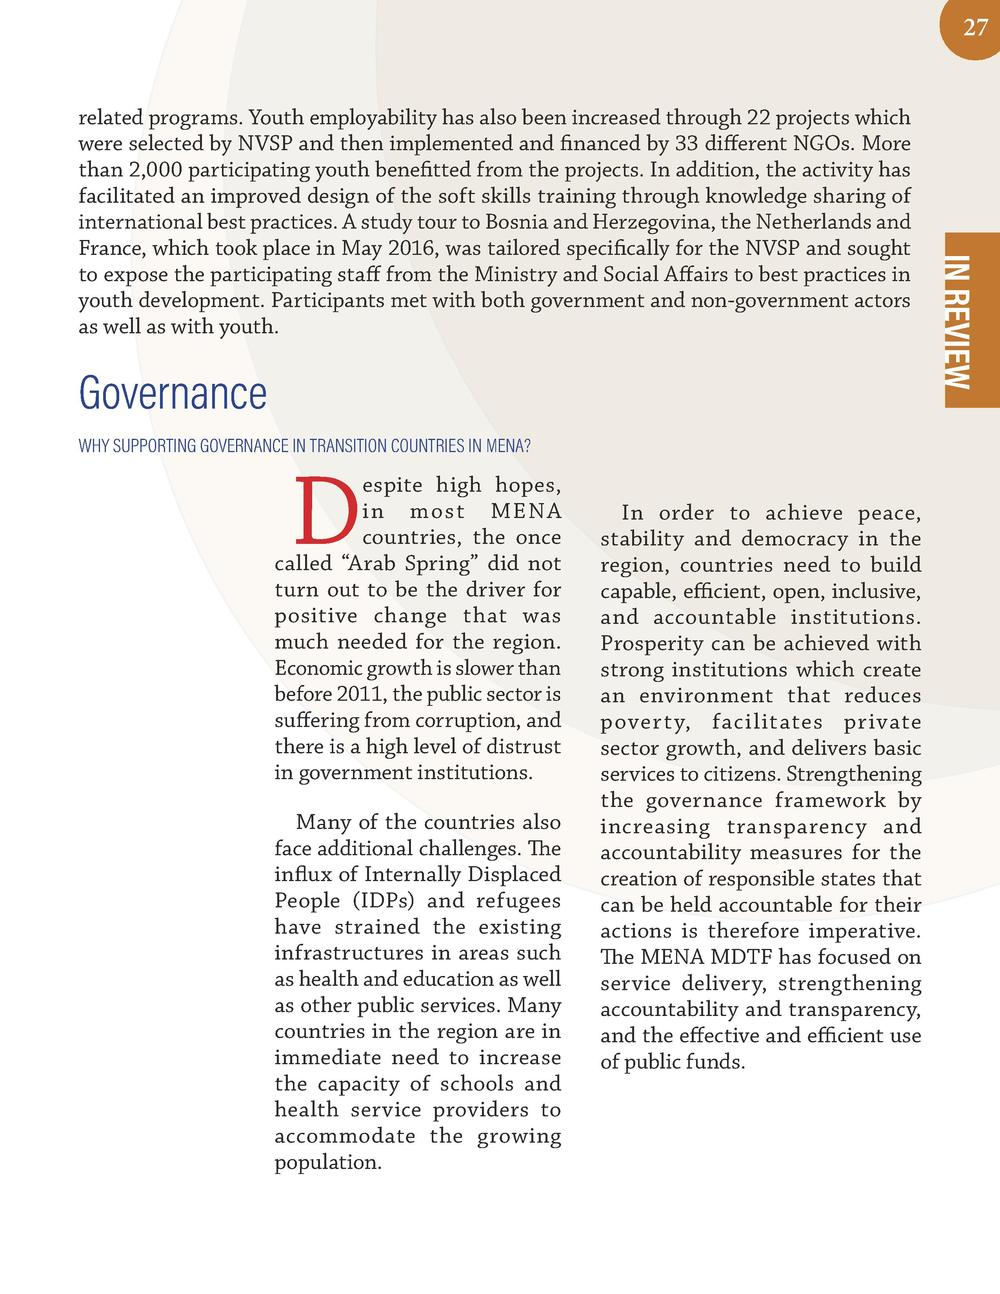 27  Governance WHY SUPPORTING GOVERNANCE IN TRANSITION COUNTRIES IN MENA   D  espite high hopes, i n most MENA countries, ...